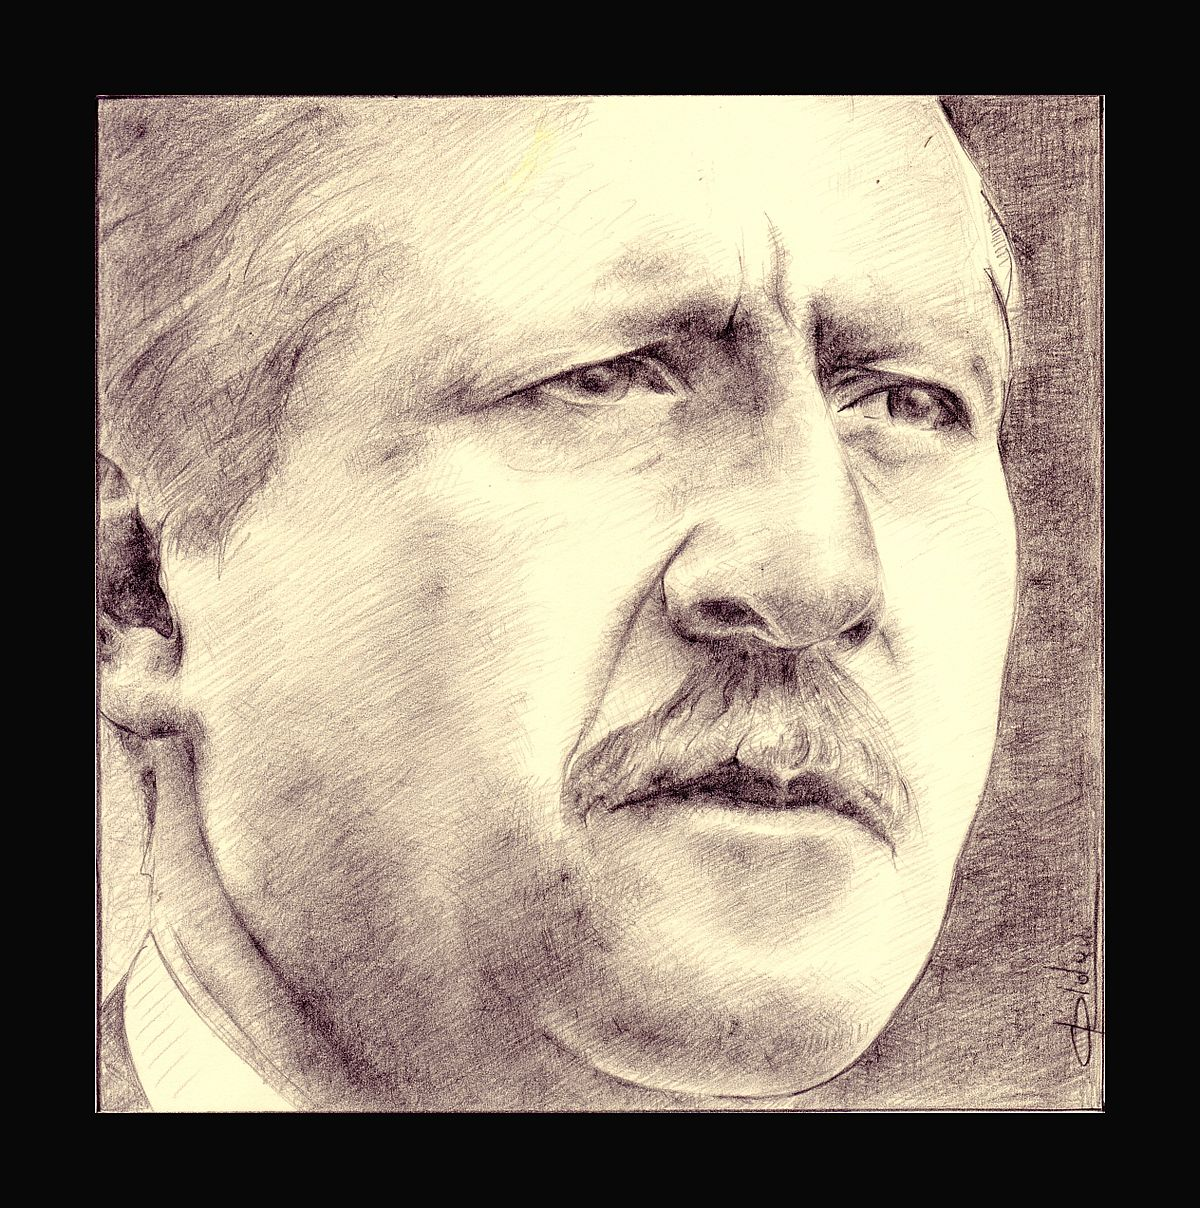 paolo borsellino - photo #35